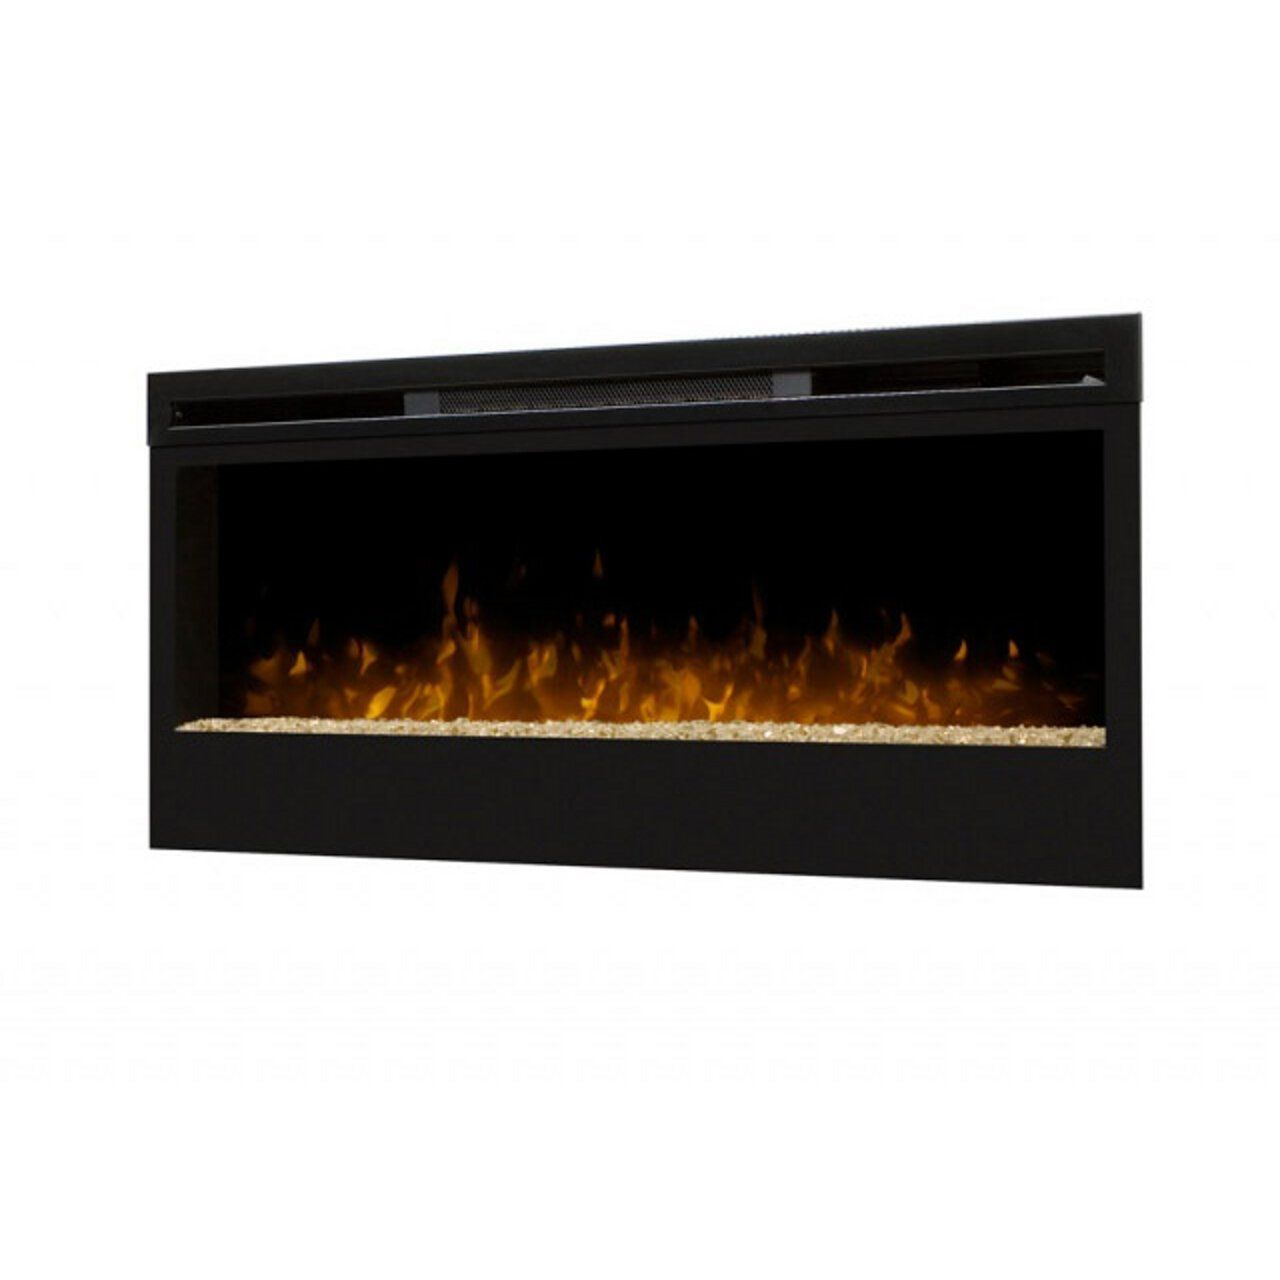 Dimplex Blf50 50 Inch Synergy Linear Wall Mount Electric Fireplace 900 1399 00 Wall Mount Electric Fireplace Electric Fireplace Electric Fireplace Reviews